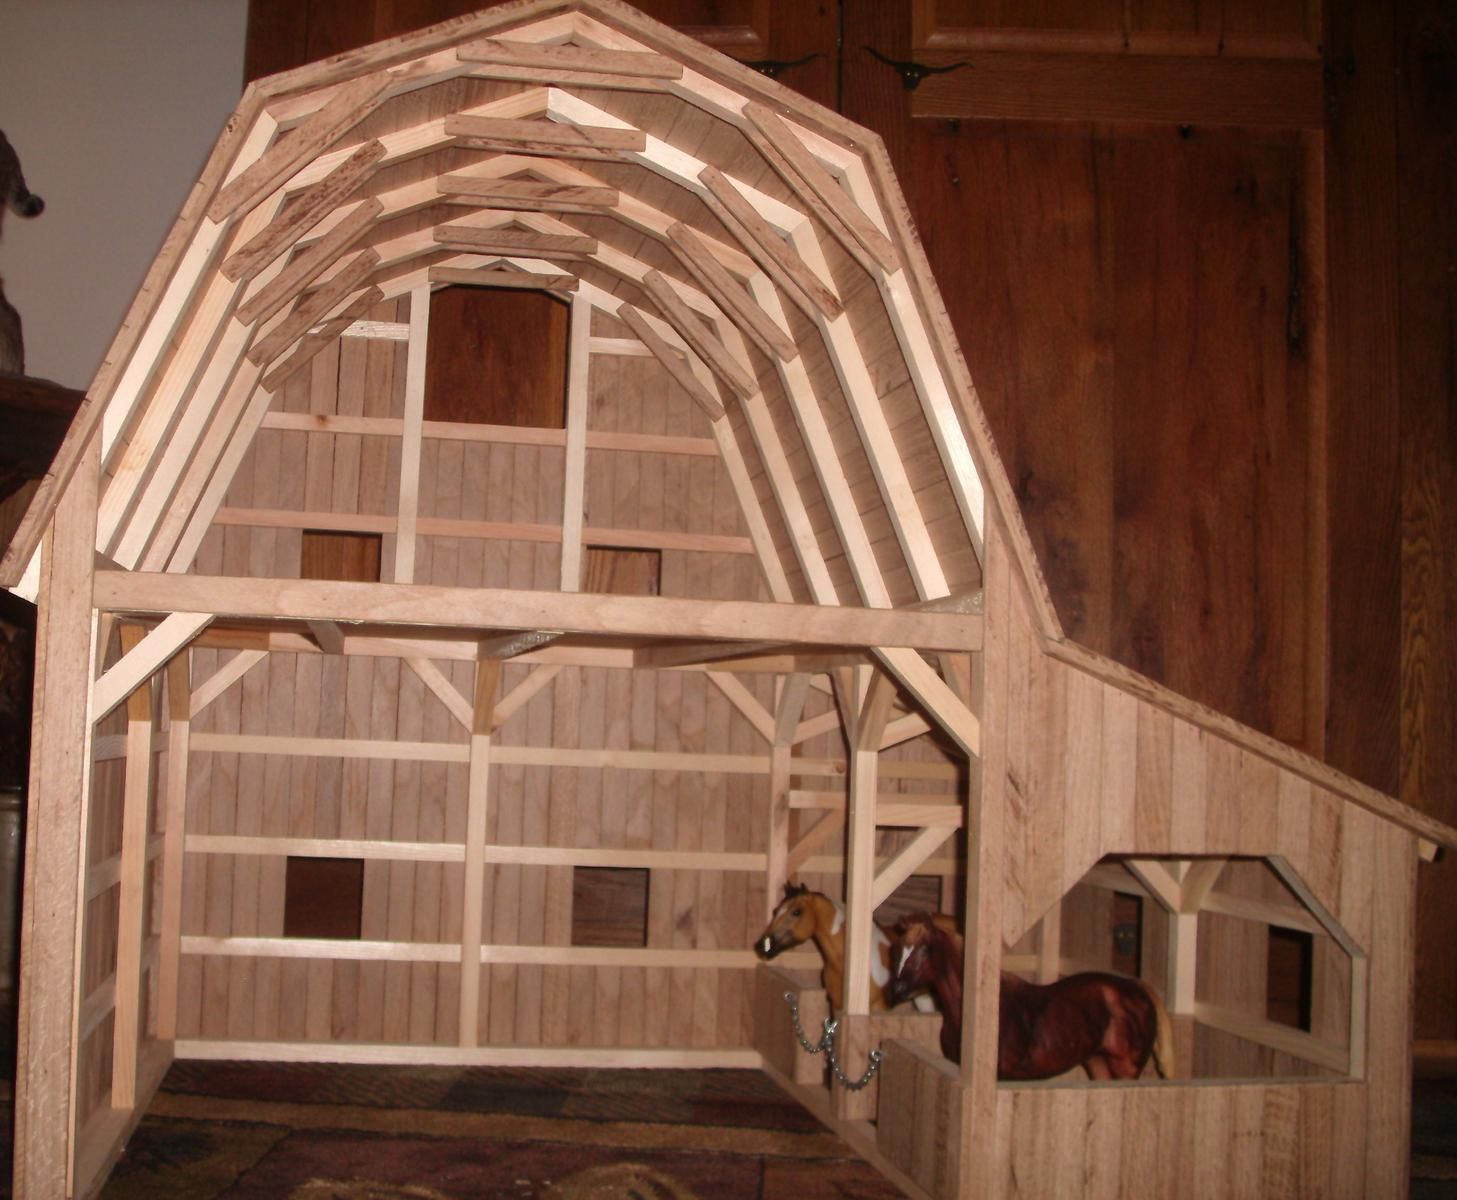 Creations Crafted Toy Barn3 Wooden By Wild Cat Hollow Hand ARLq354j